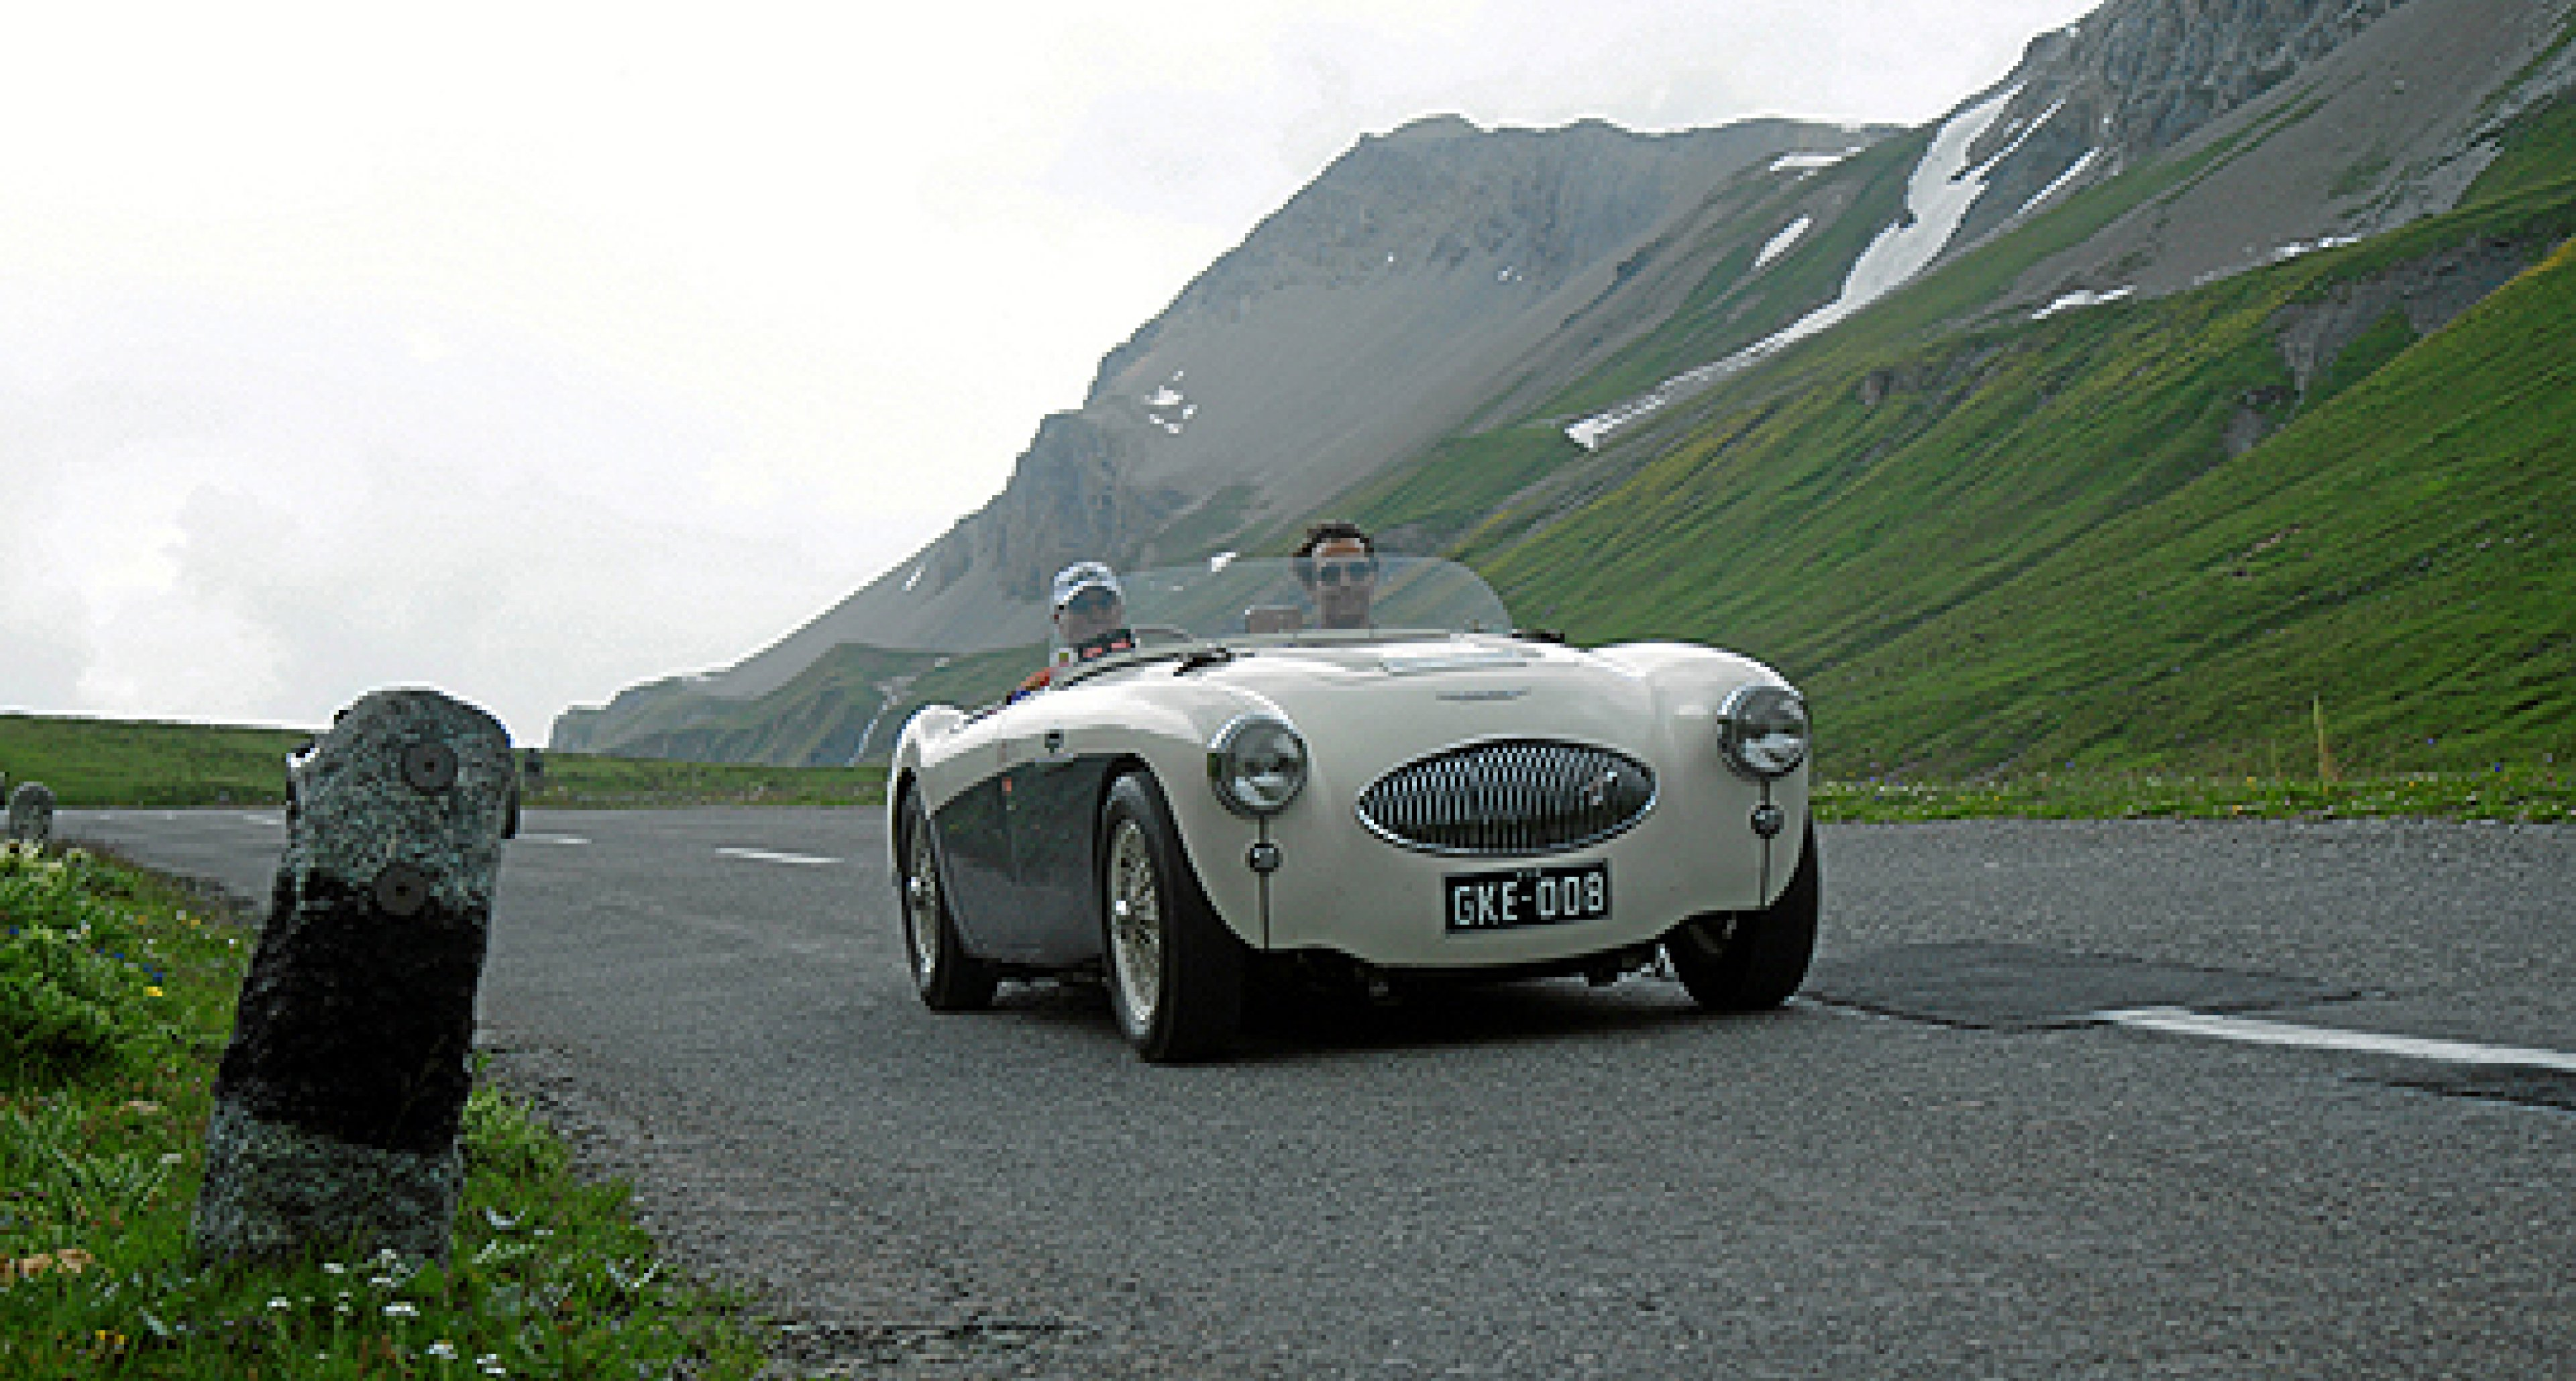 British Classic Car Meeting, St. Moritz – Austin-Healey 100S and E-types to Star